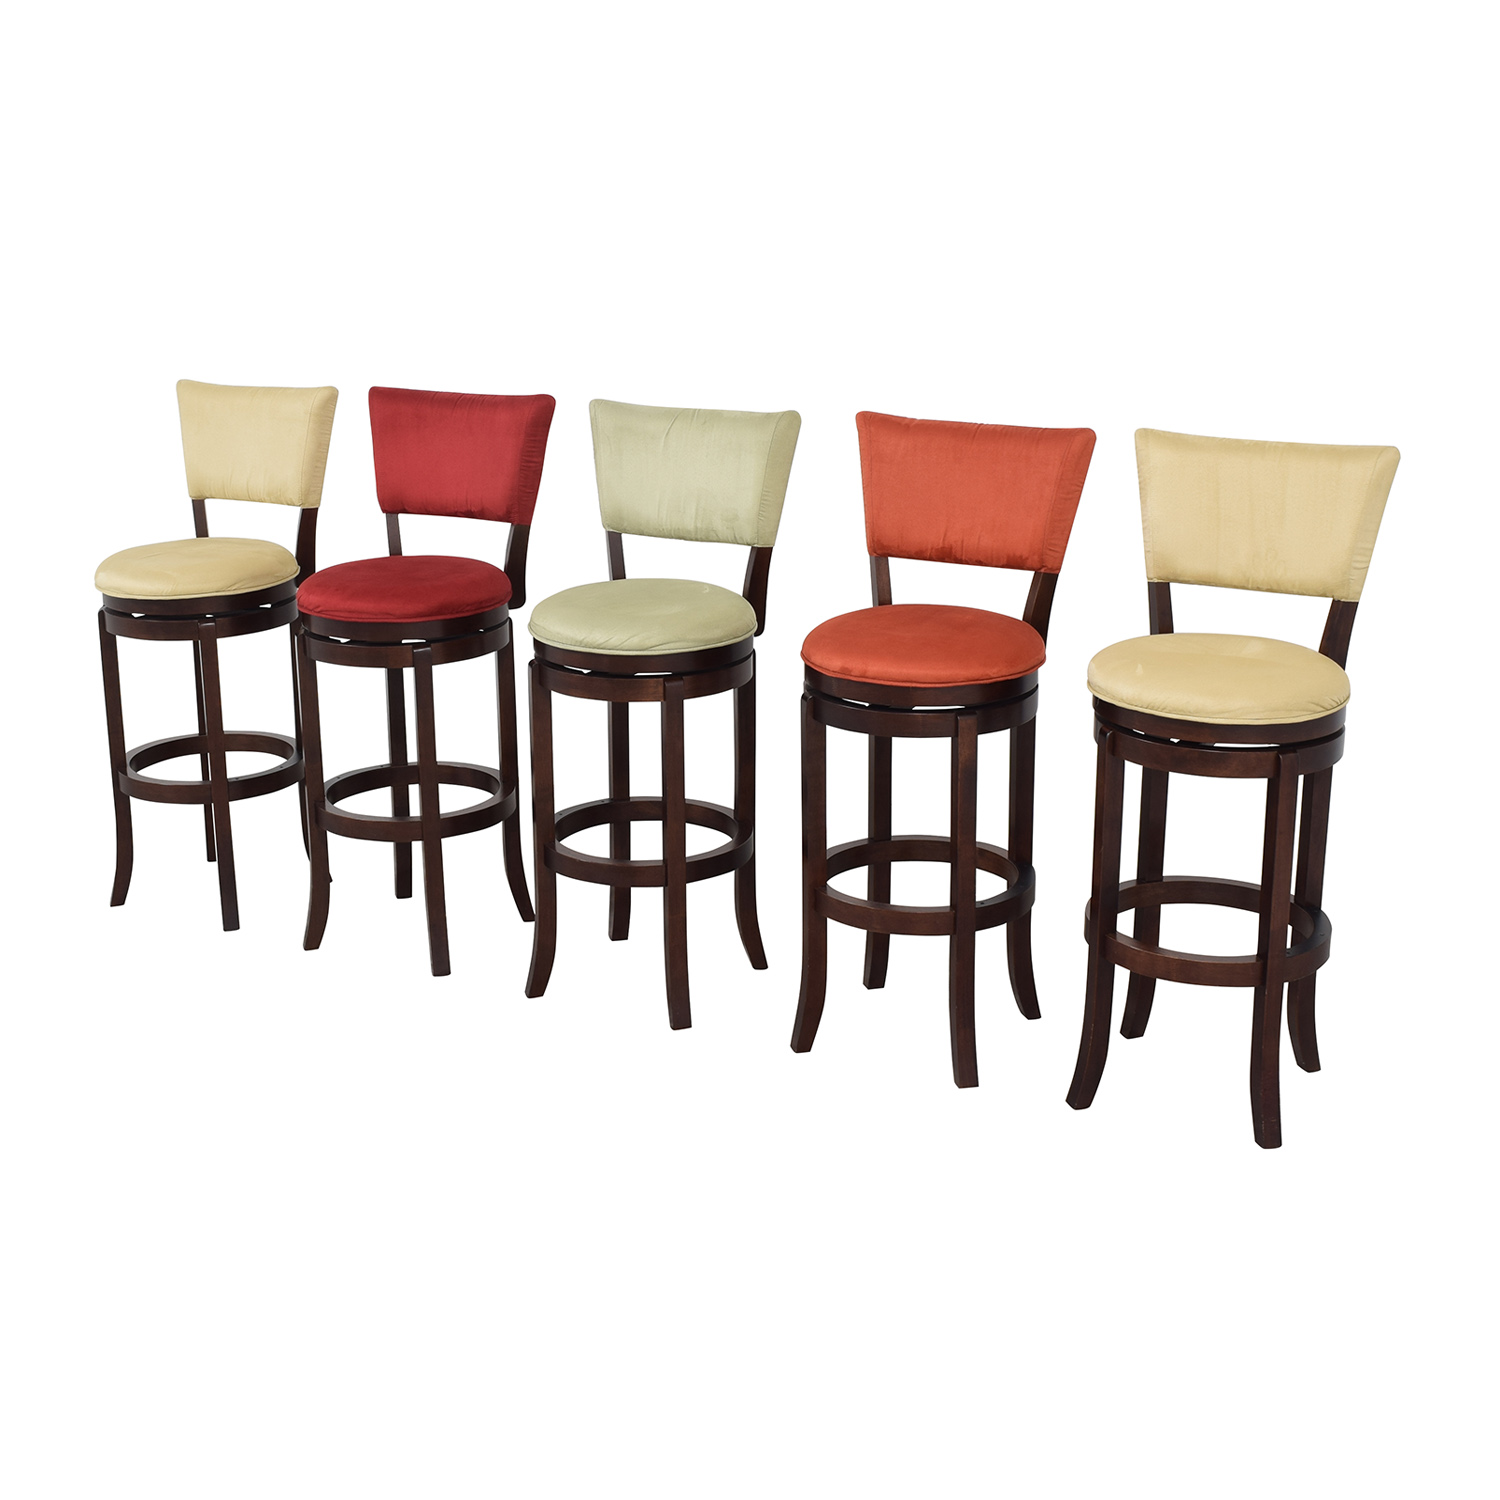 Rooms To Go Rooms To Go Keefer Bar Stools for sale